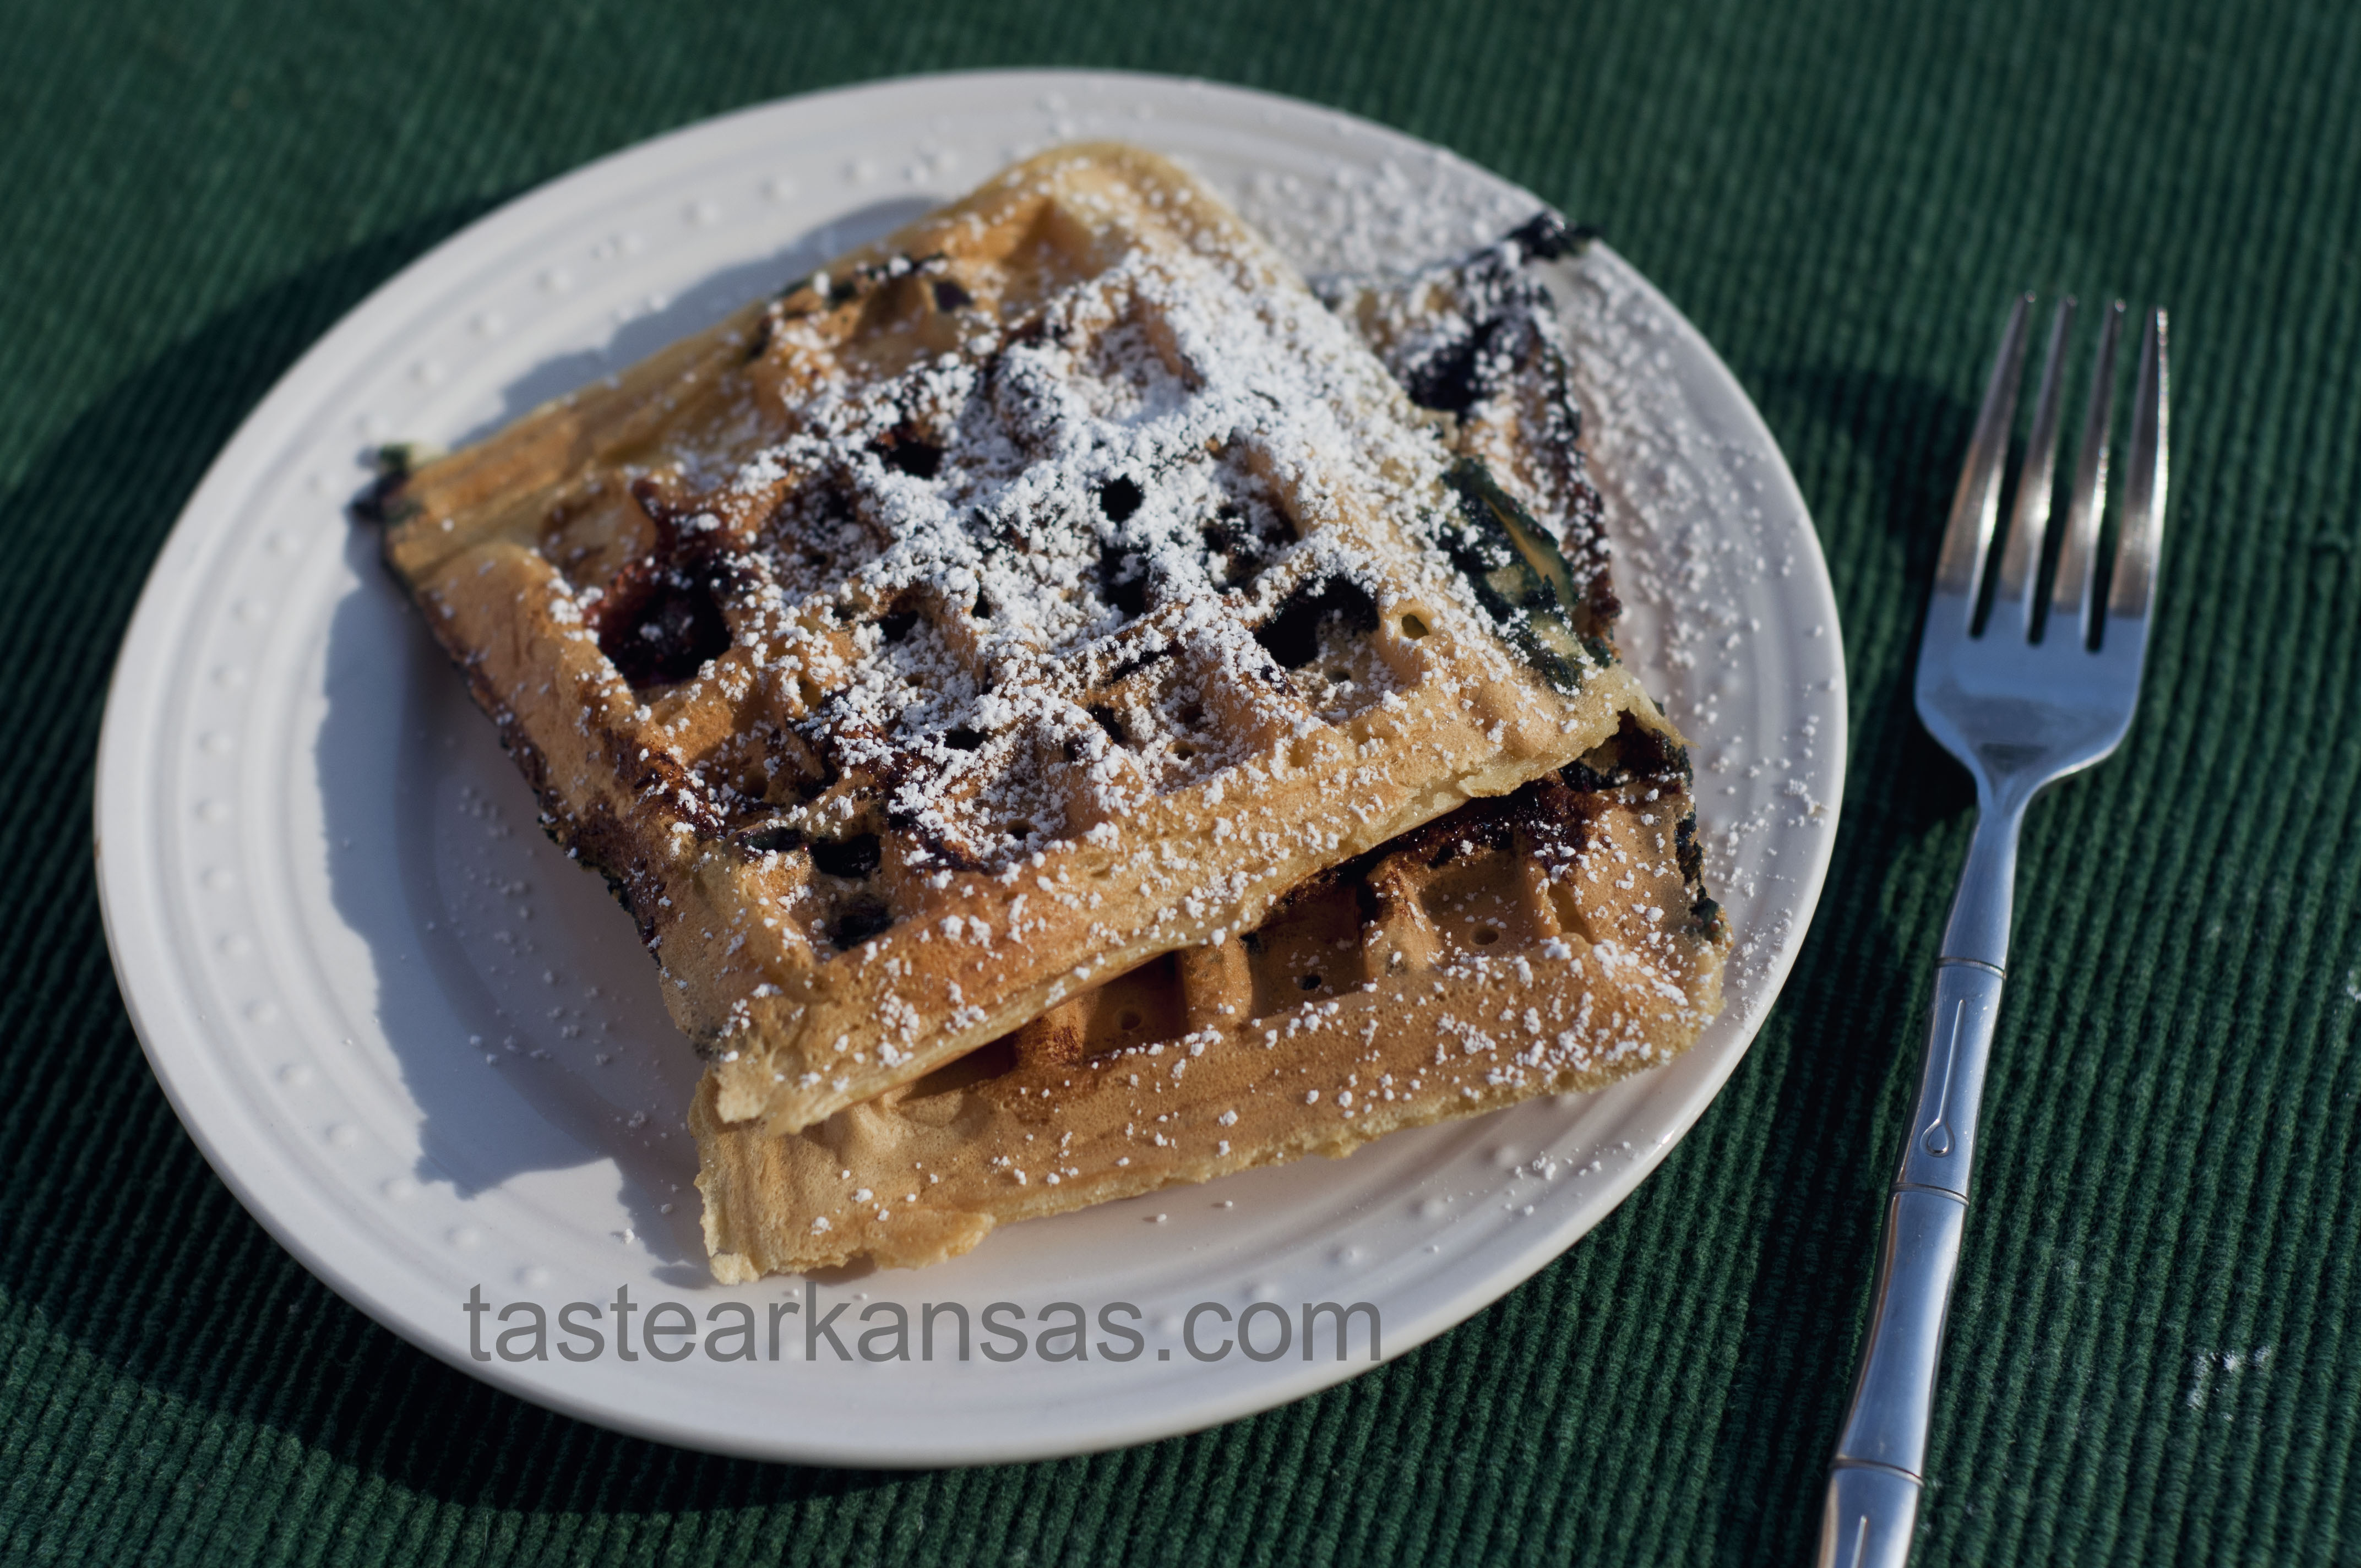 a warm plate of blueberry waffles with a dusting of powdered sugar